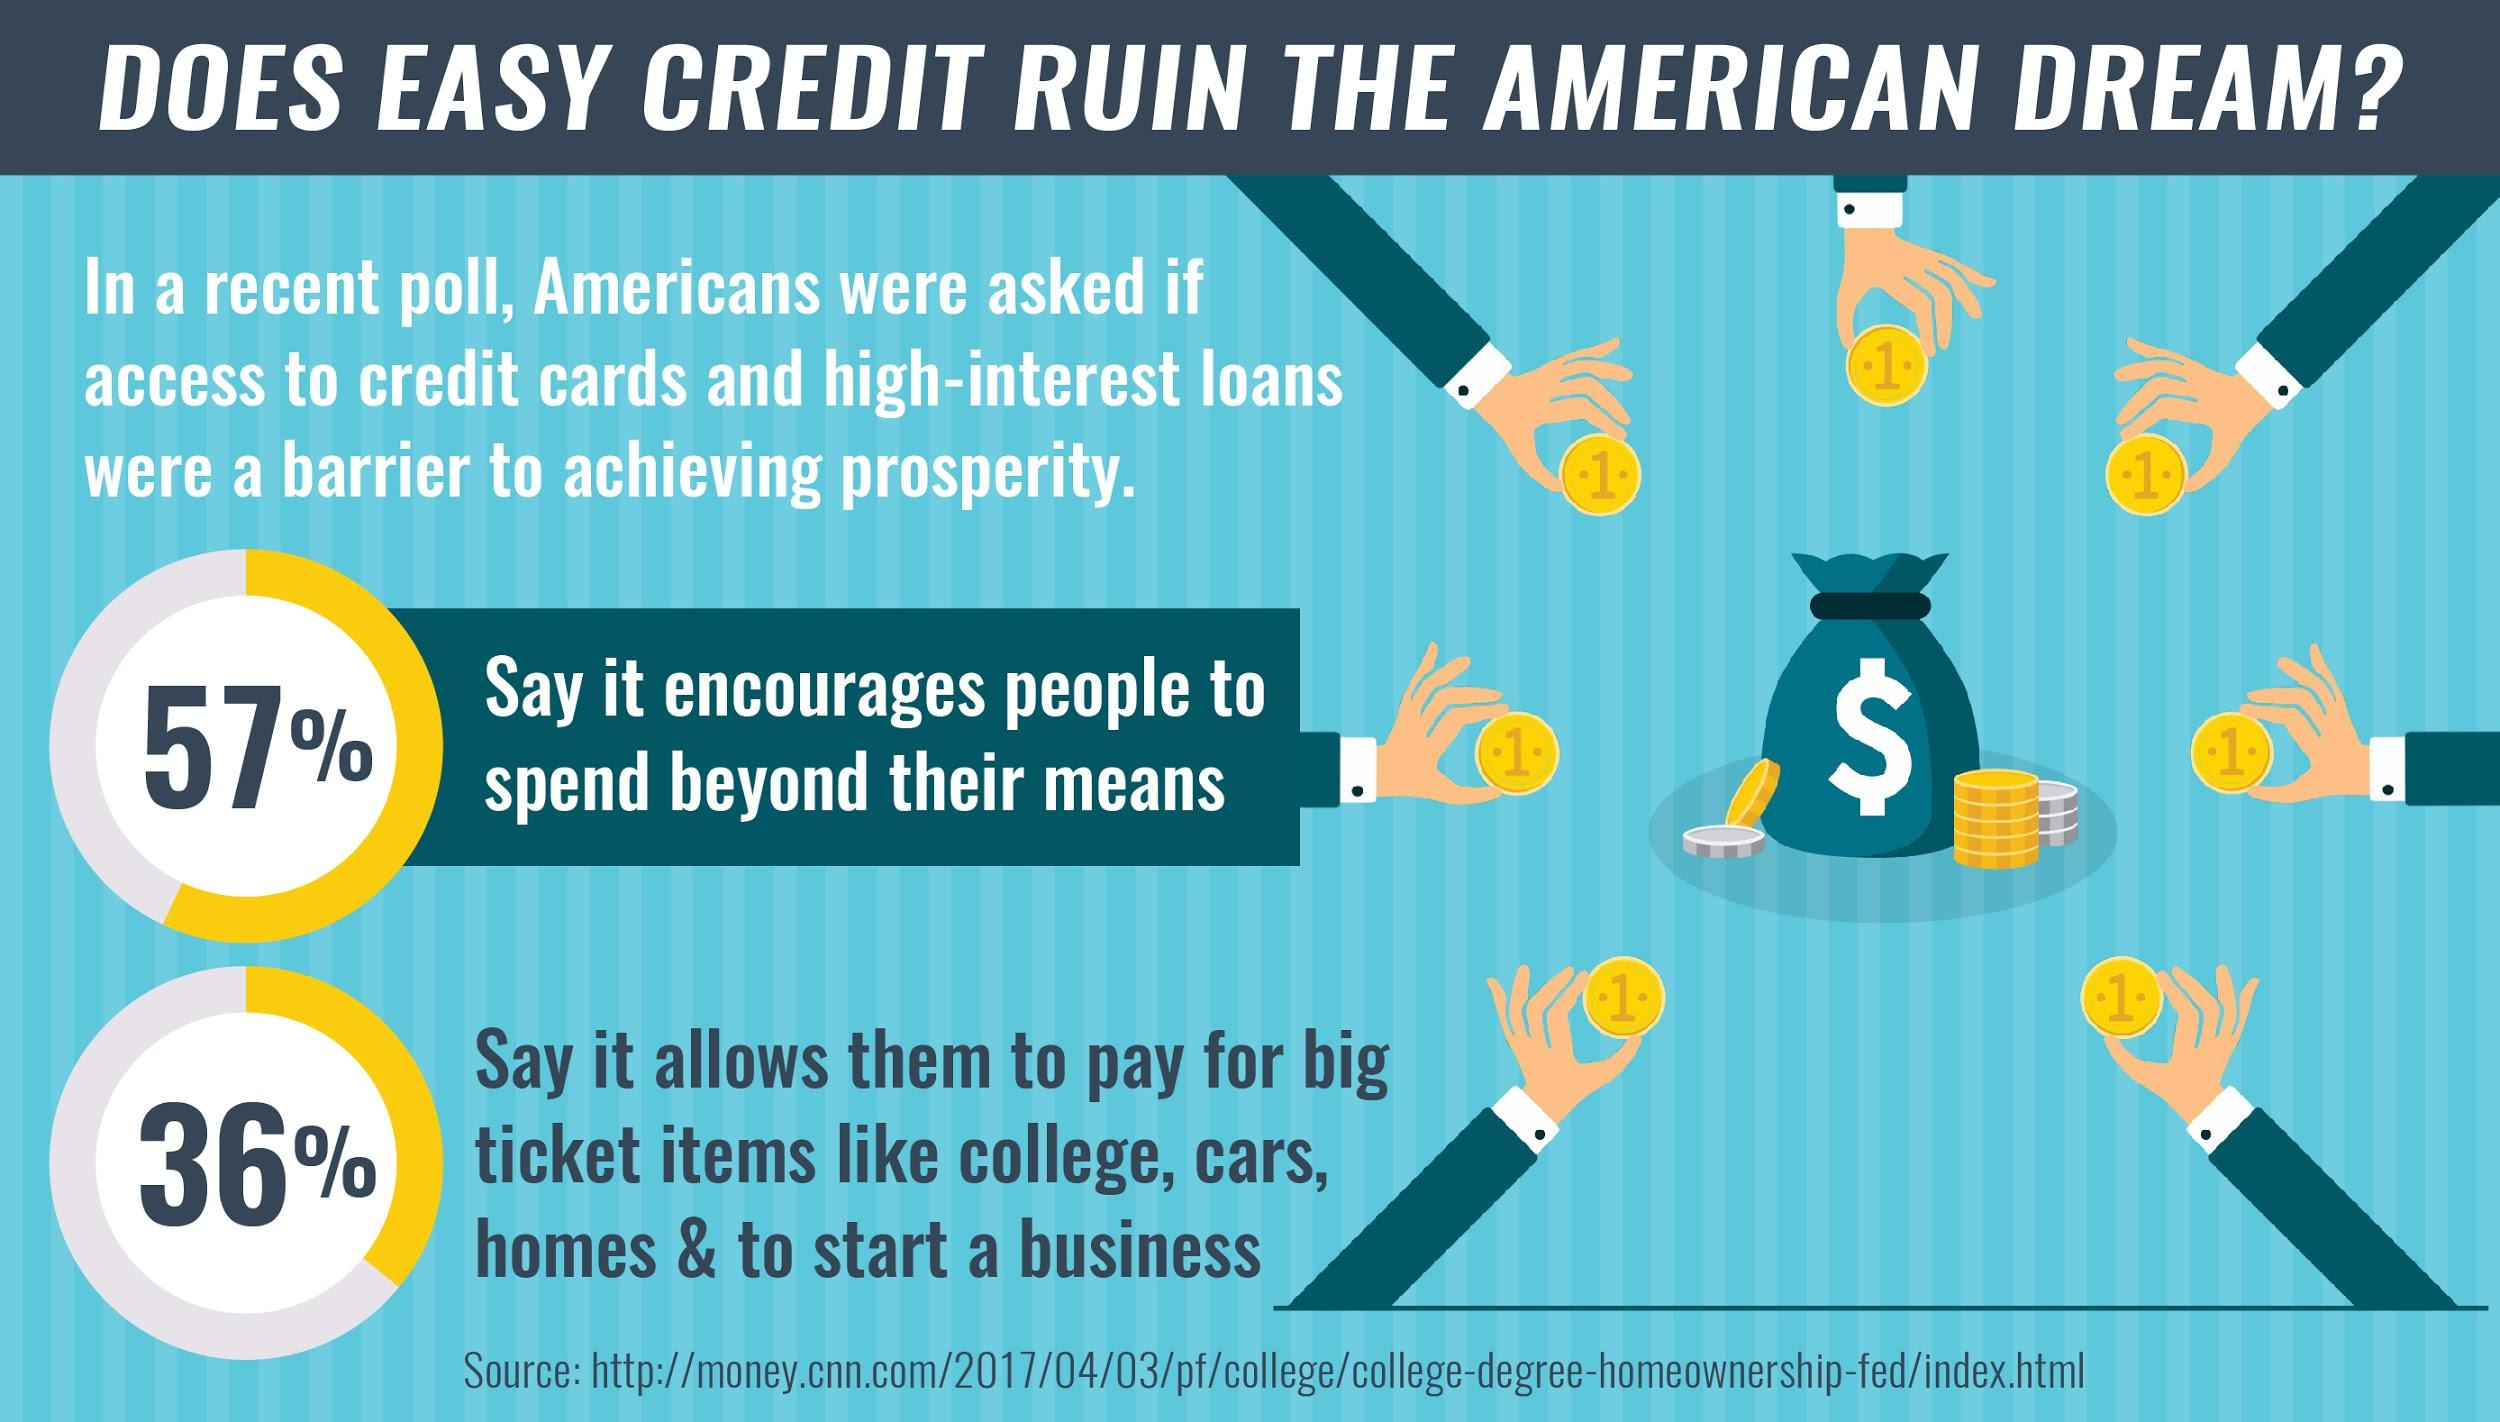 stats about credit affecting the American Dream